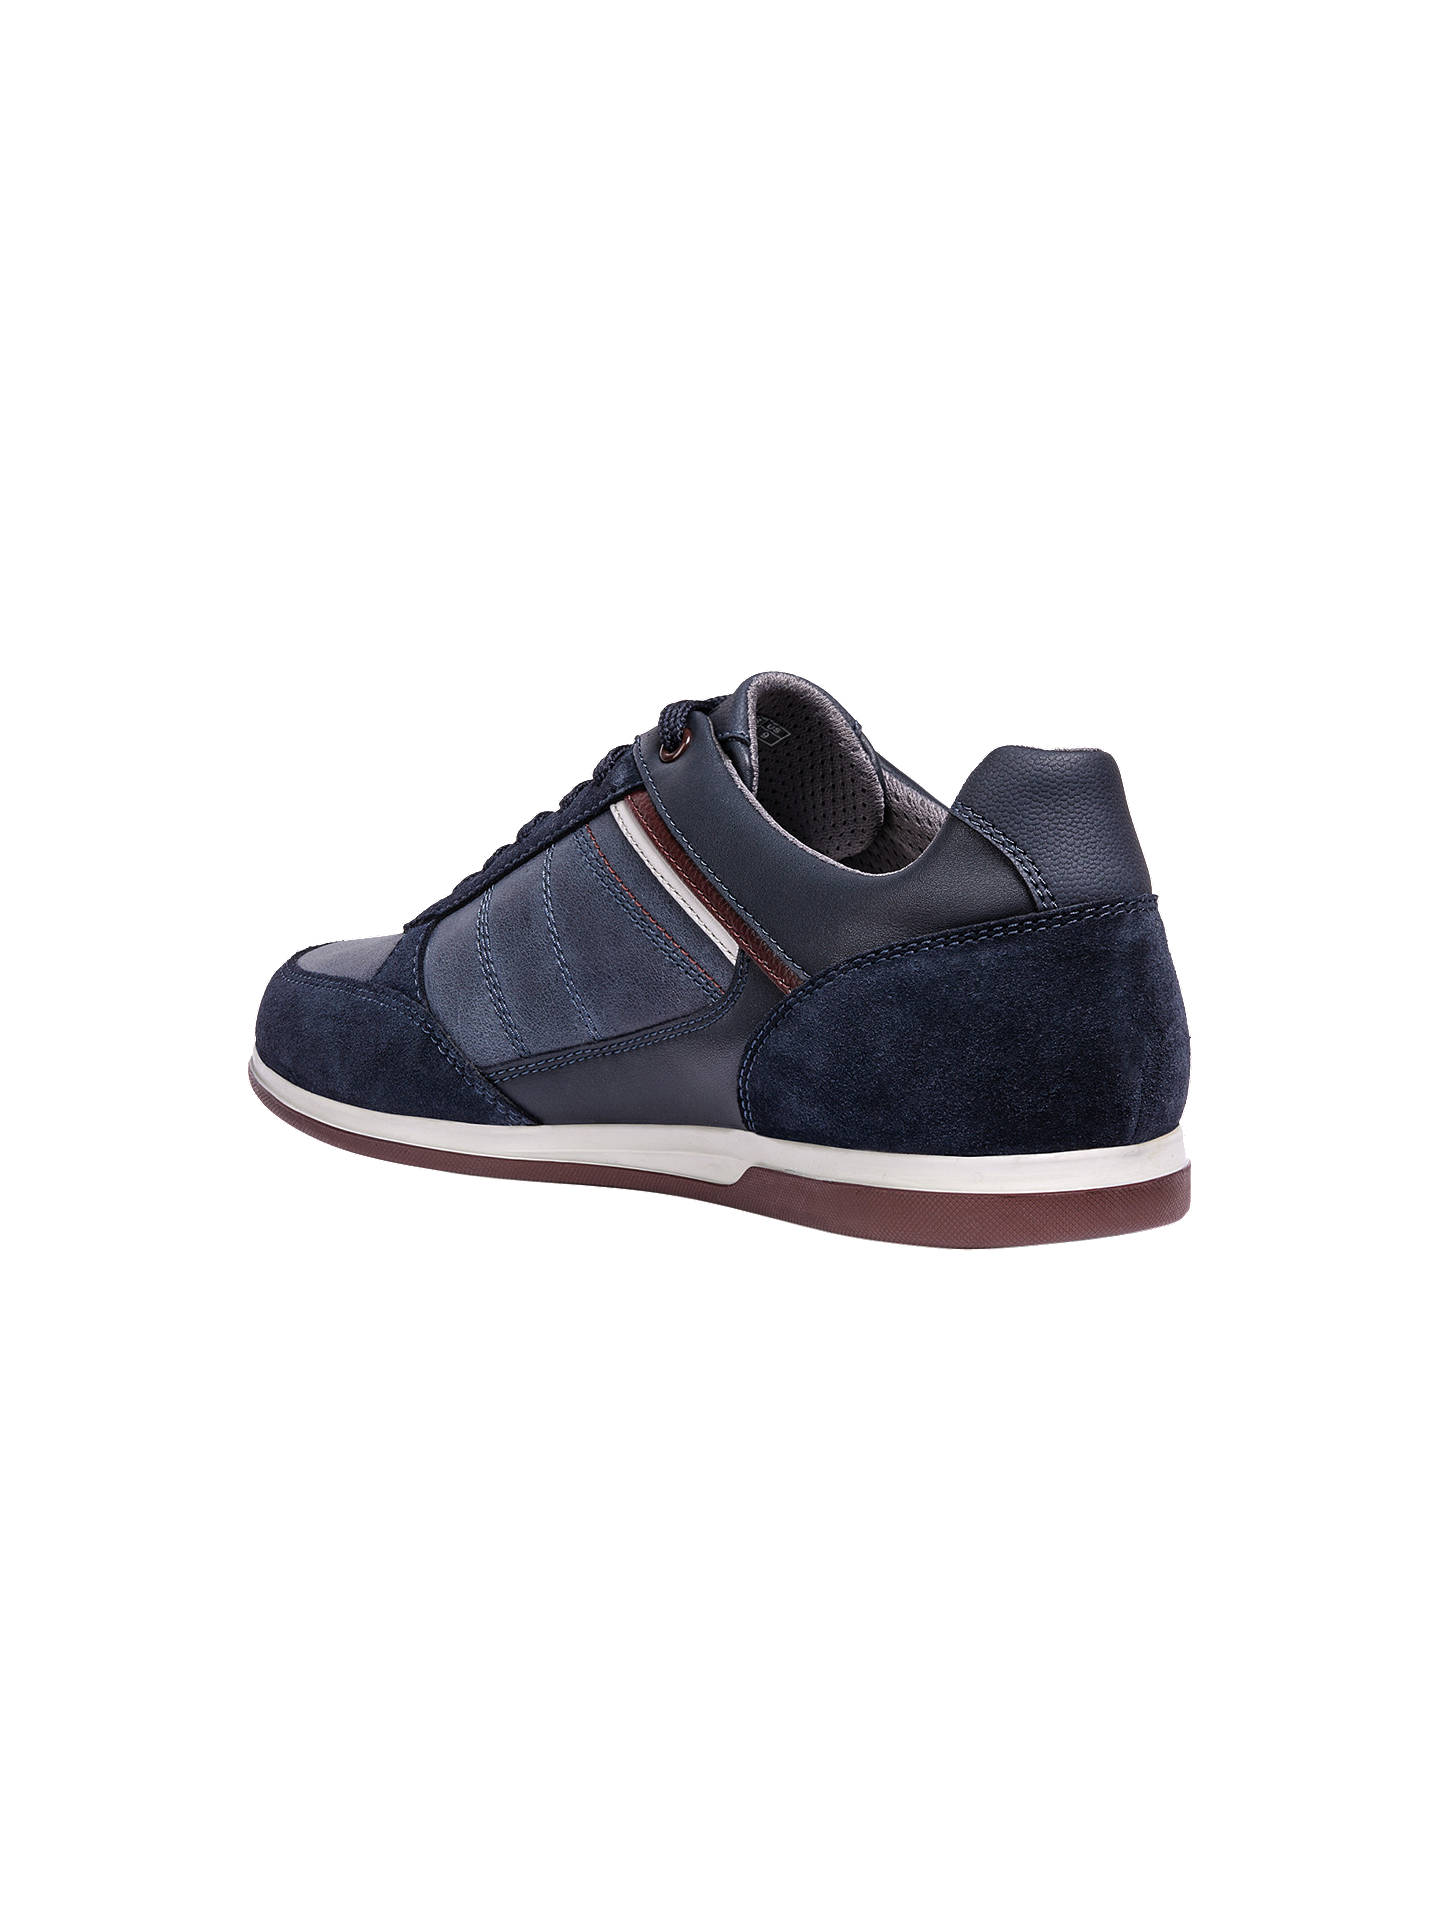 b9e53a6f320 ... Buy Geox Renan Breathable Trainers, Blue, 8 Online at johnlewis.com ...